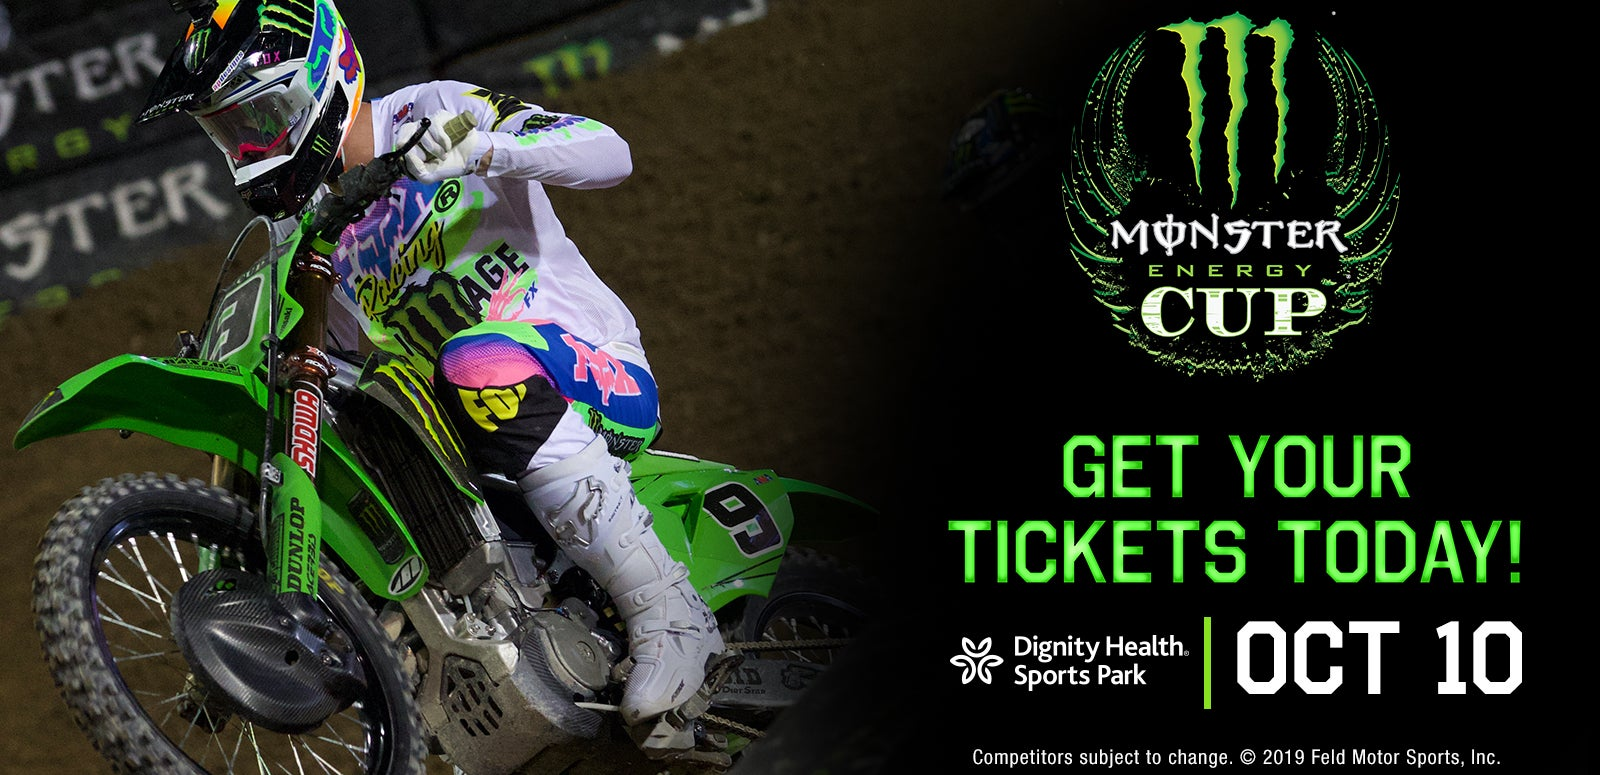 CANCELLED: Monster Energy Cup & Supercross Futures National Championship